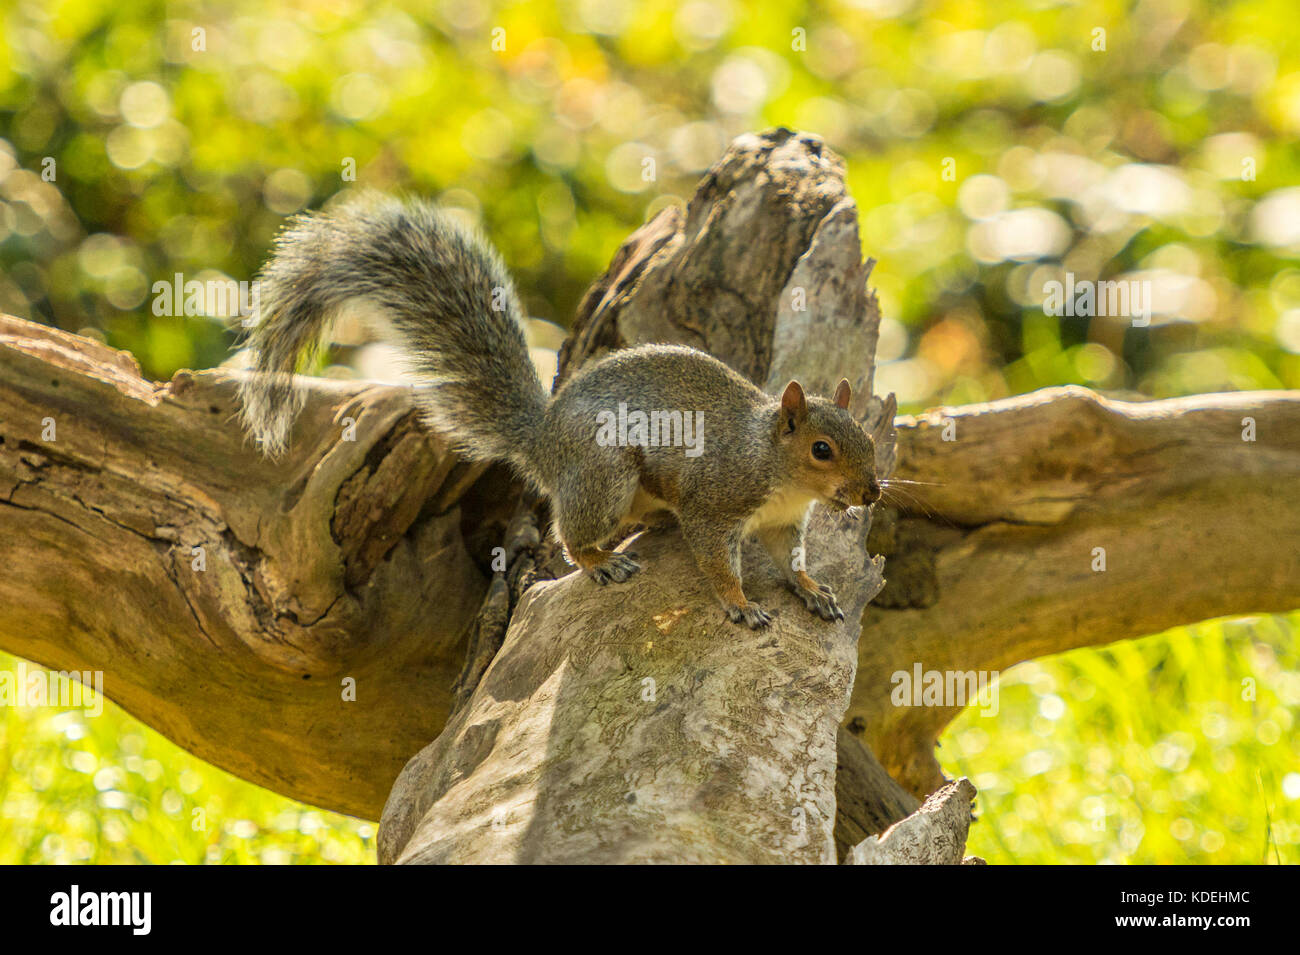 British Wildlife in Natural Habitat. Single Gray Squirrel foraging in ancient woodlands on bright autumn day. - Stock Image